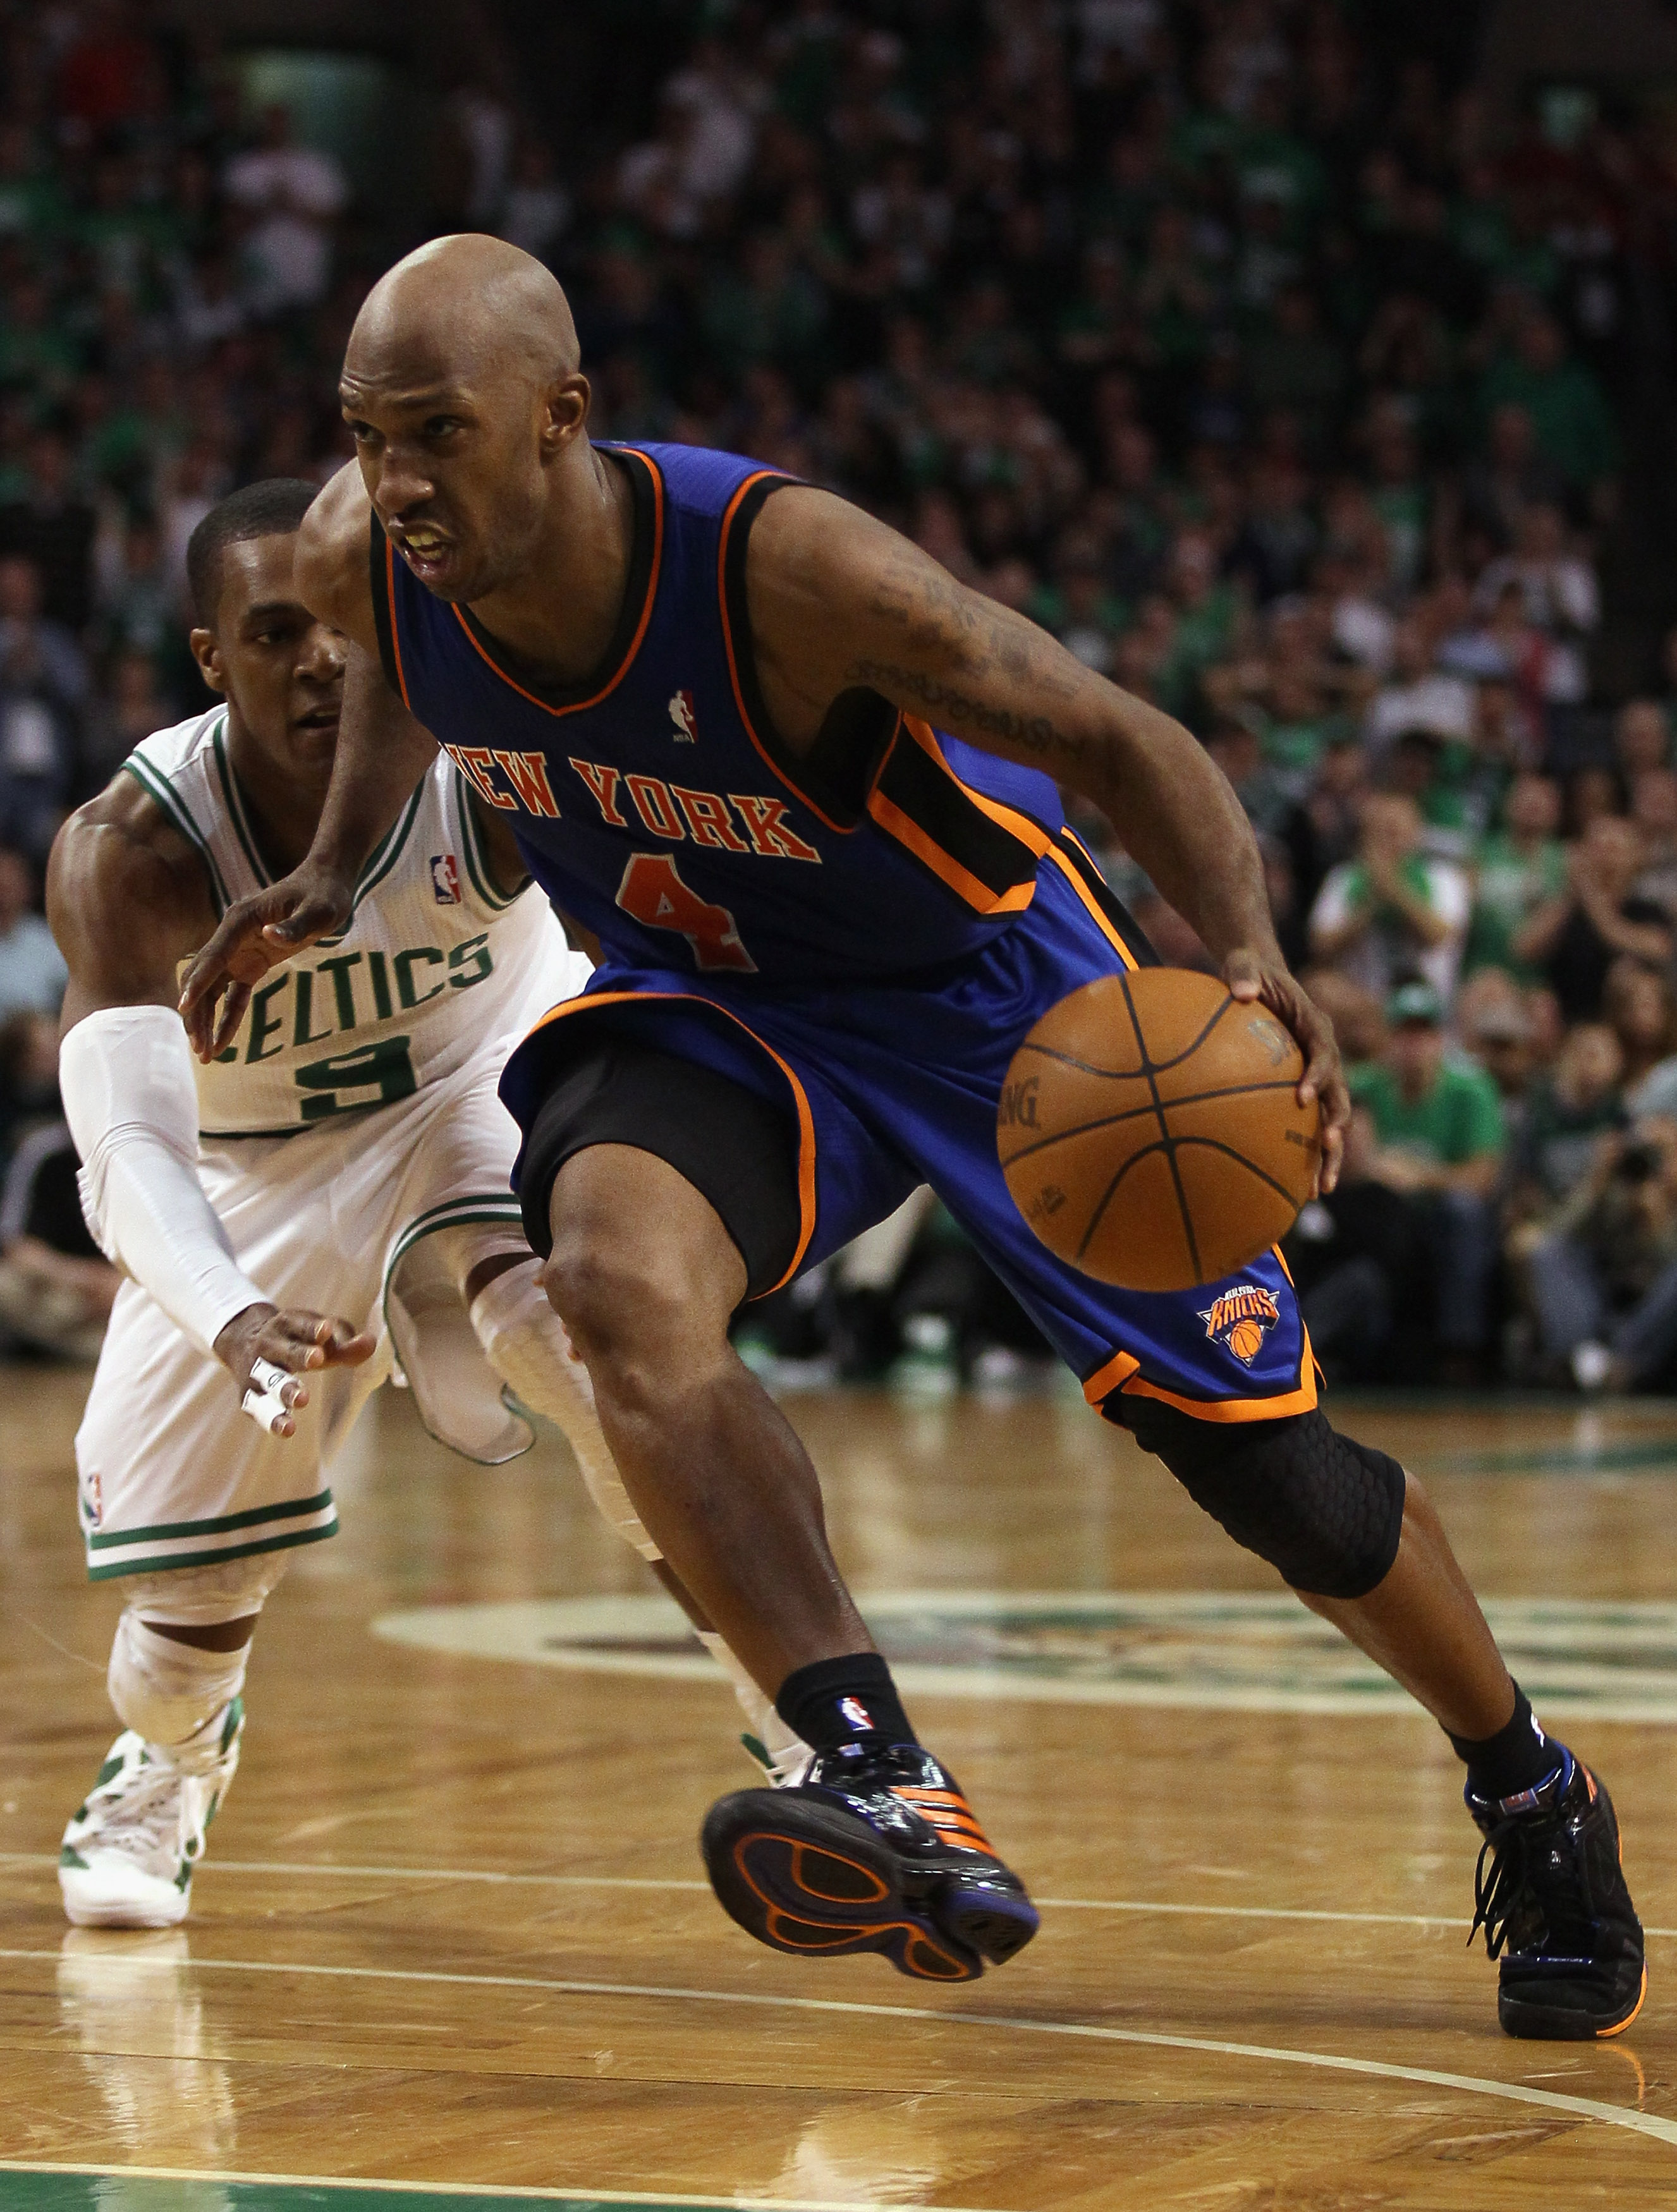 BOSTON, MA - APRIL 17:  Chauncey Billups #4 of the New York Knicks drives to the net as Rajon Rondo #9 of the Boston Celtics defends in Game One of the Eastern Conference Quarterfinals in the 2011 NBA Playoffs on April 17, 2011 at the TD Garden in Boston,